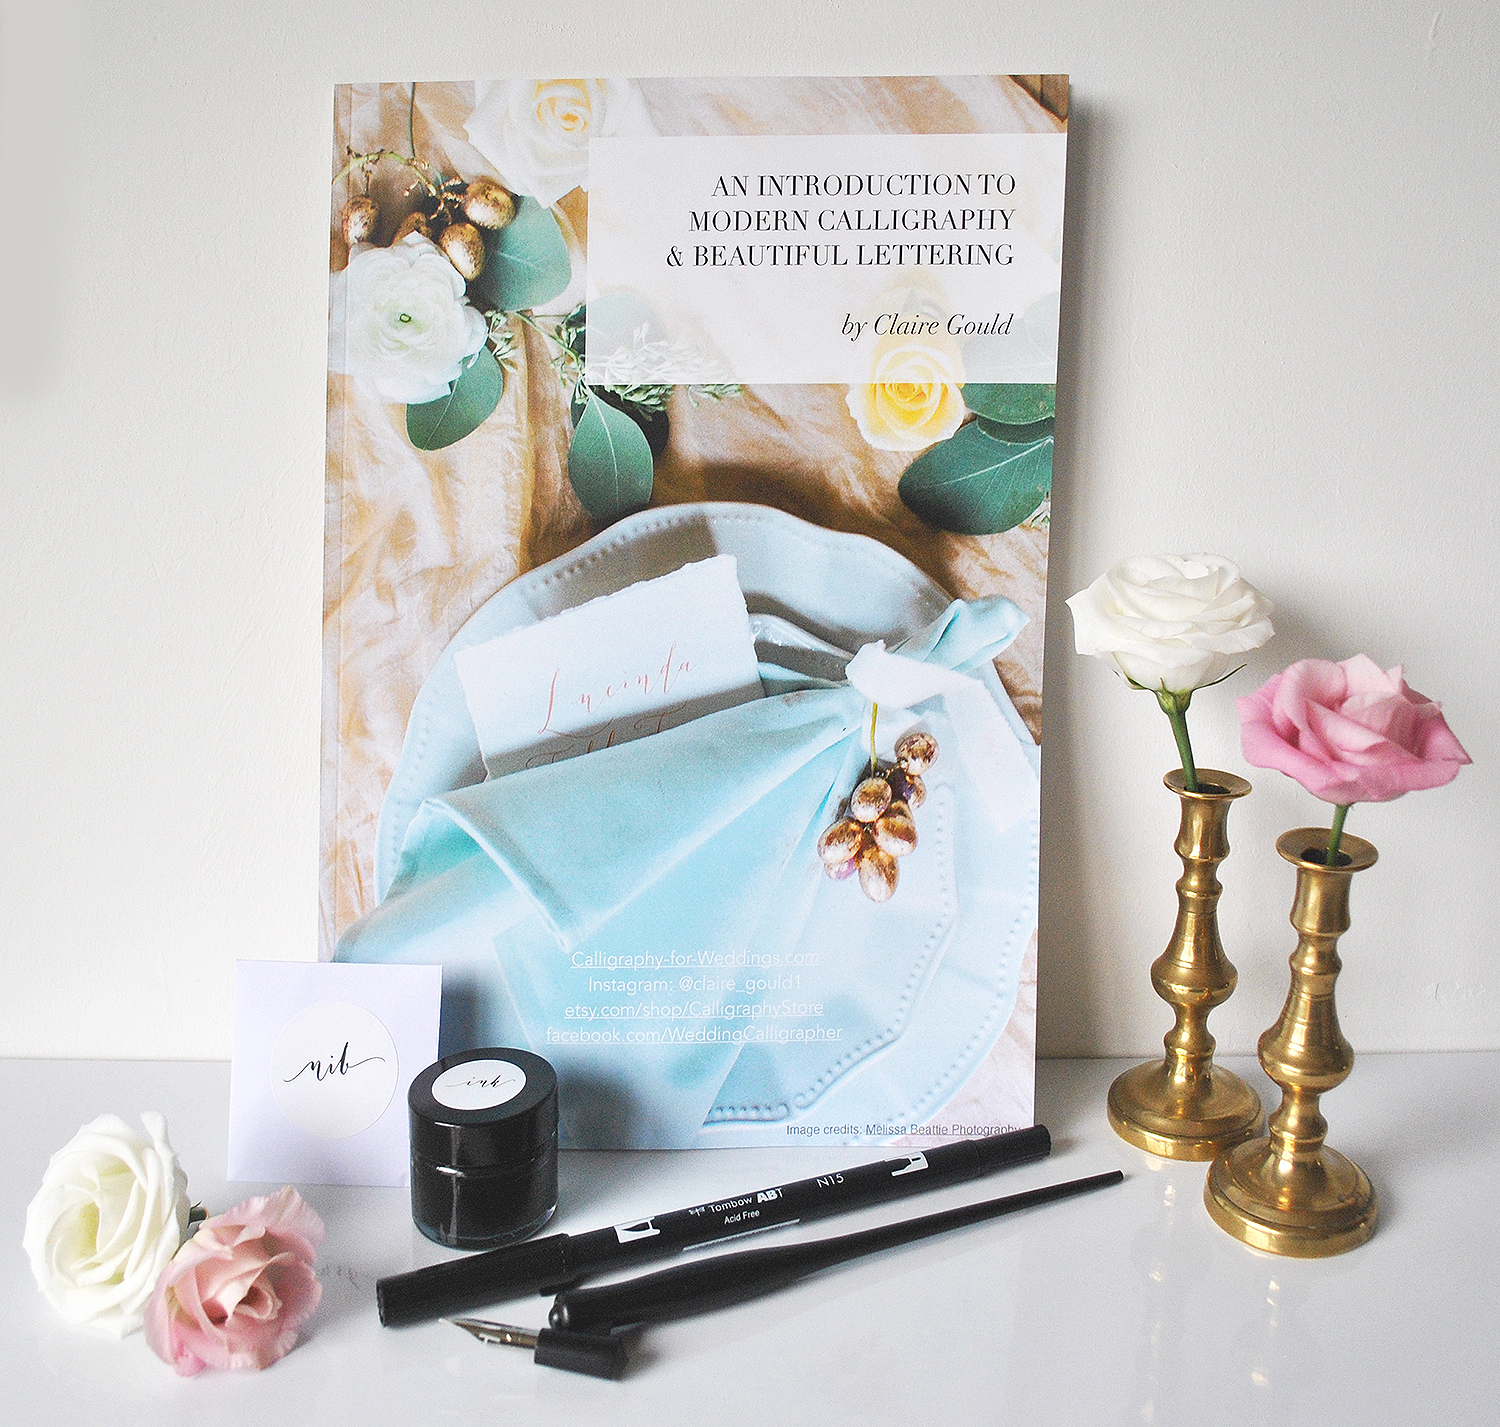 Calligraphy kit uk with book